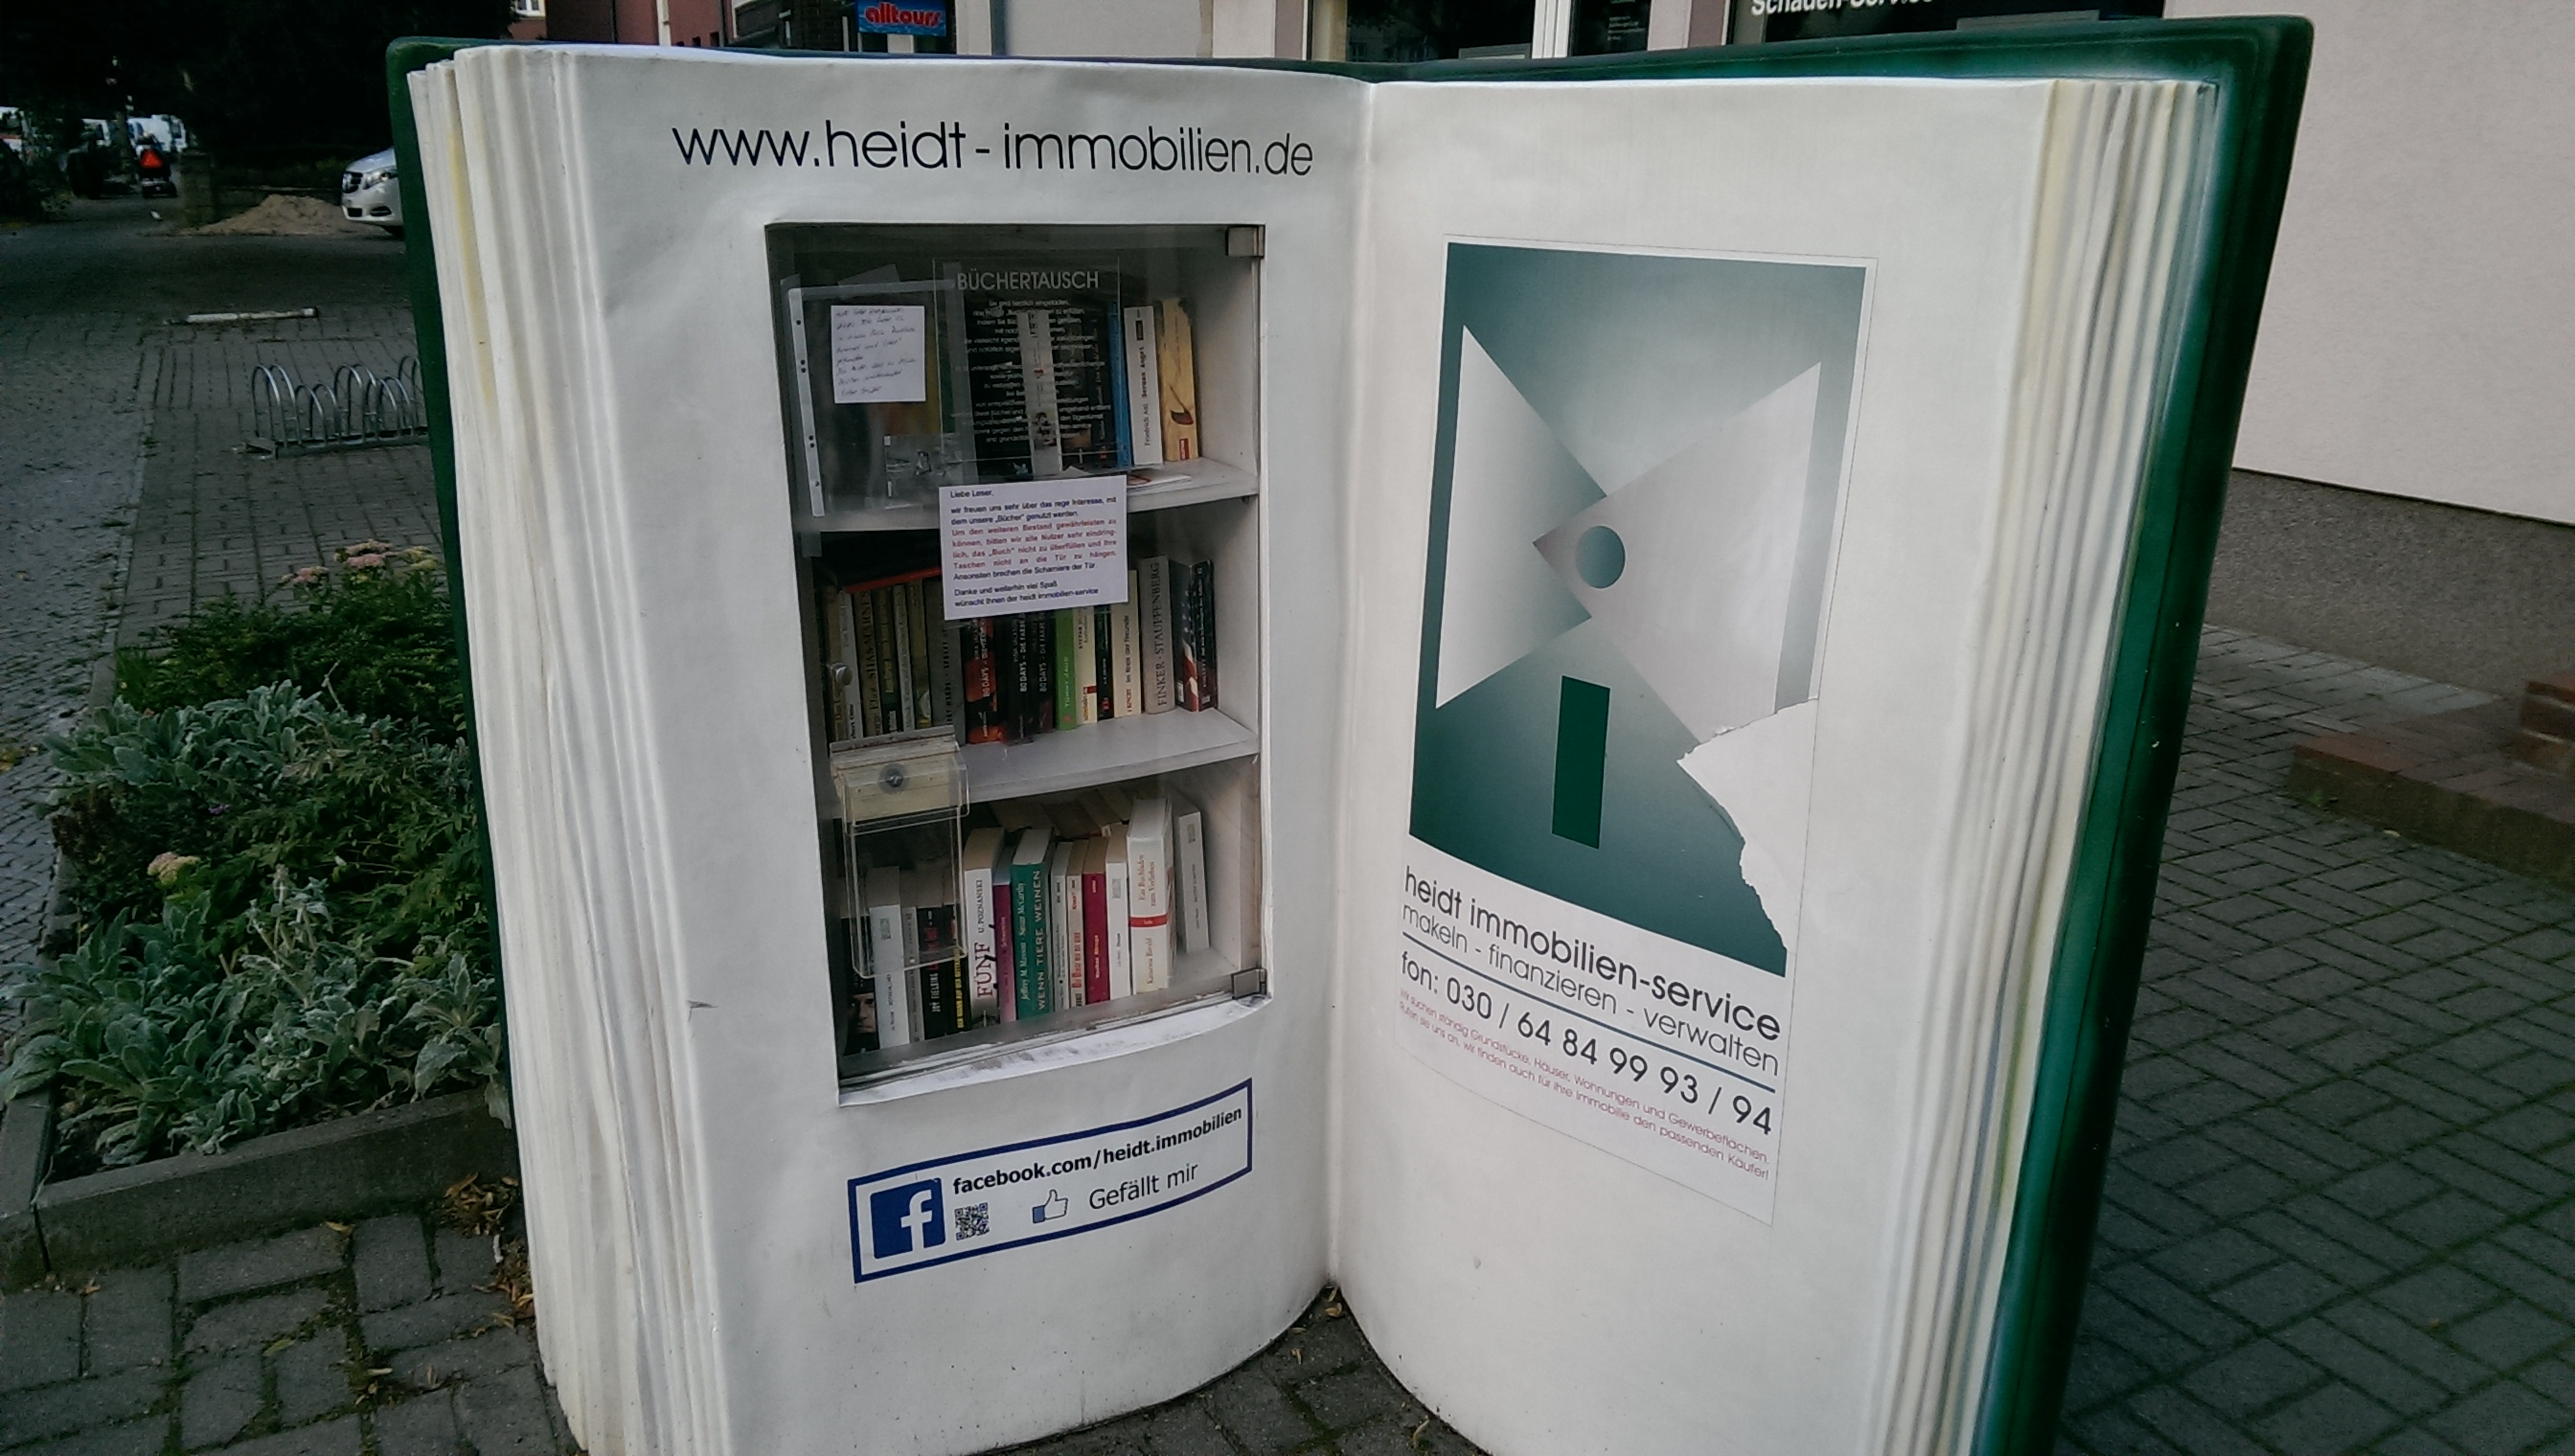 bookcrossing-Experiment (3)